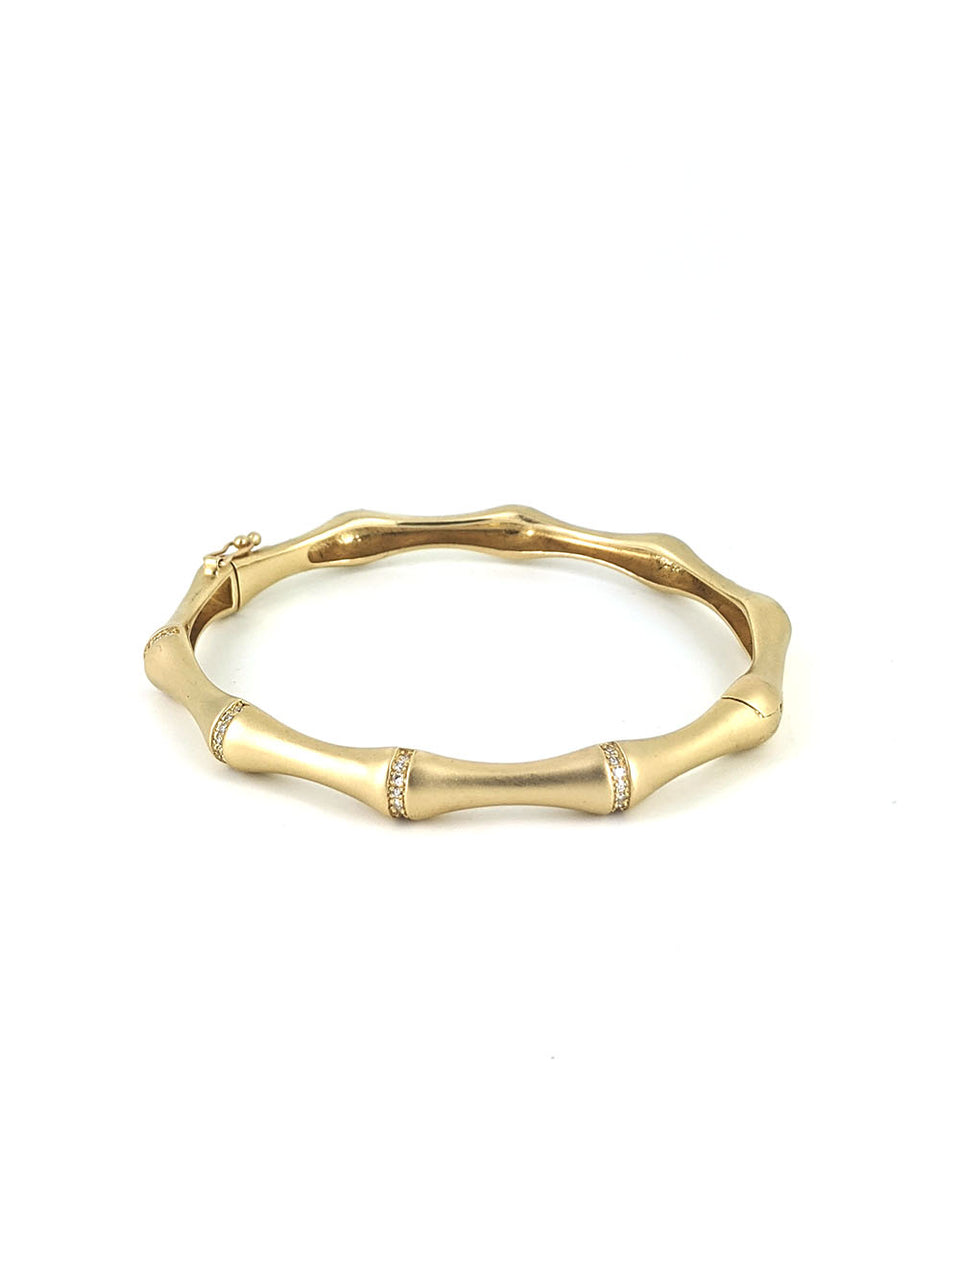 Gold and Diamond Bamboo Bracelet